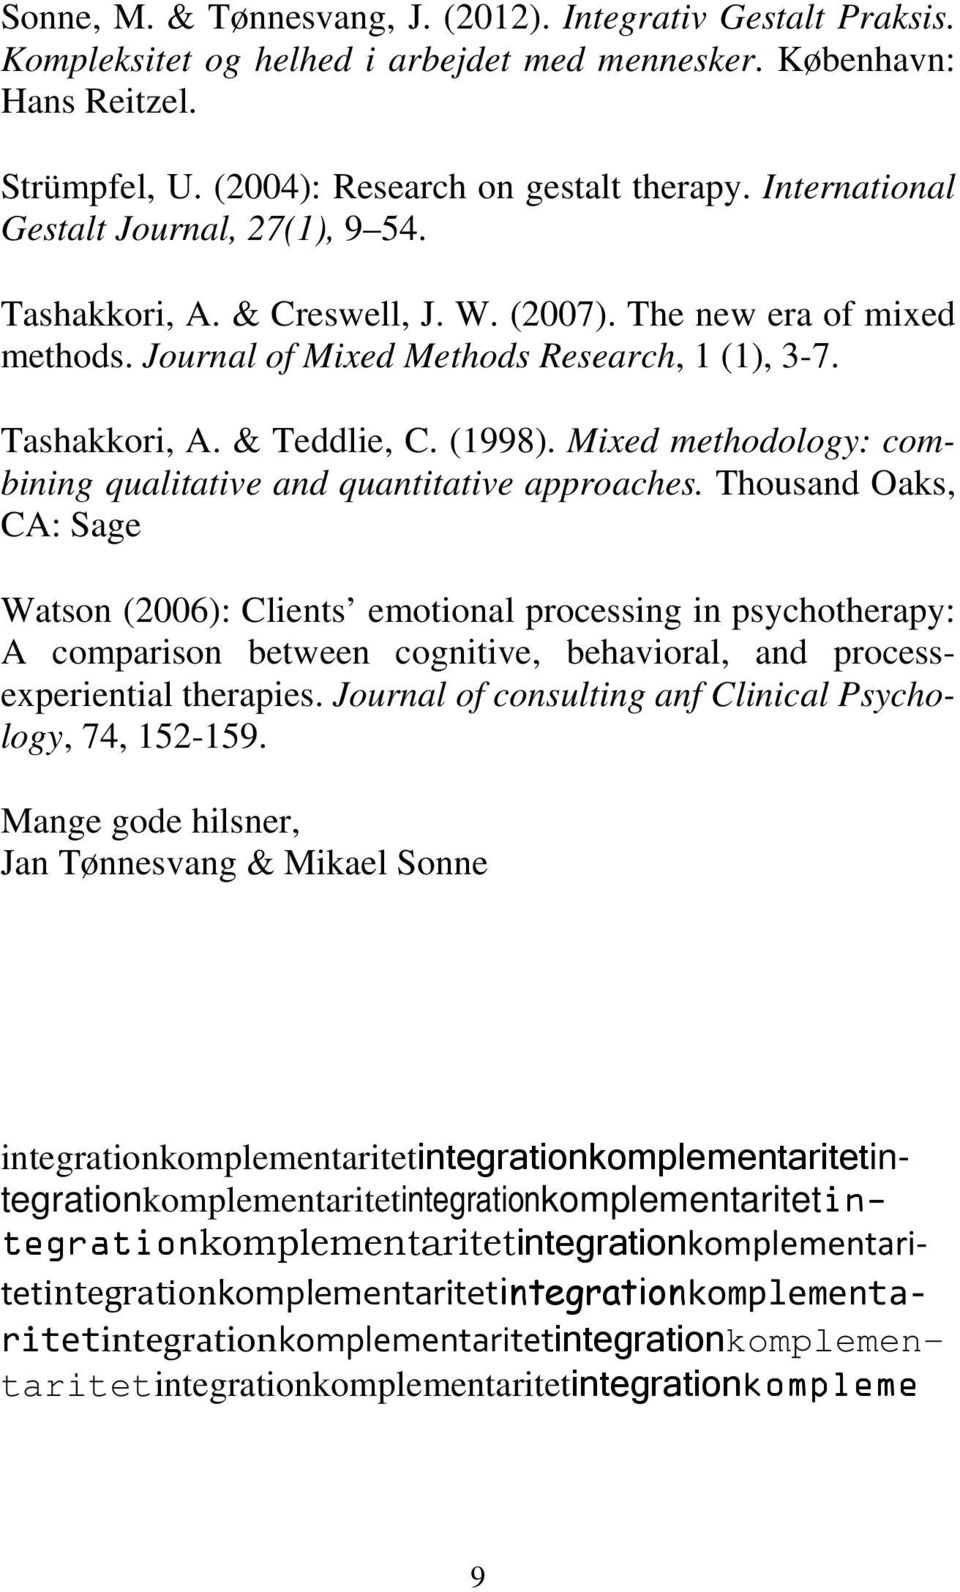 Mixed methodology: combining qualitative and quantitative approaches.